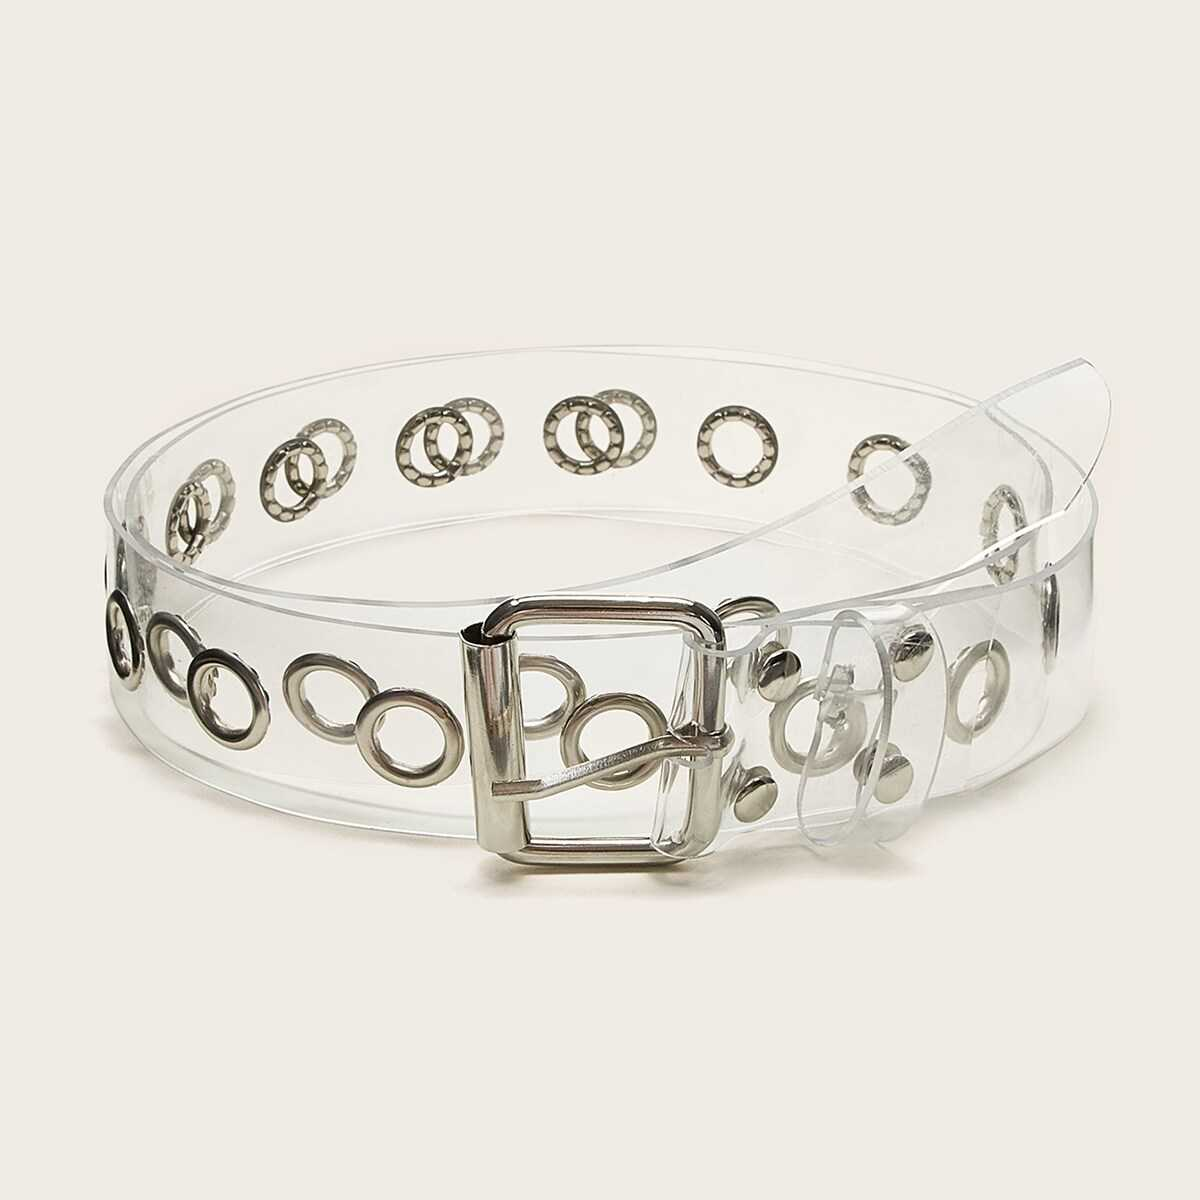 Clear Square Shaped Buckle Belt 1pc in Silver by ROMWE on GOOFASH